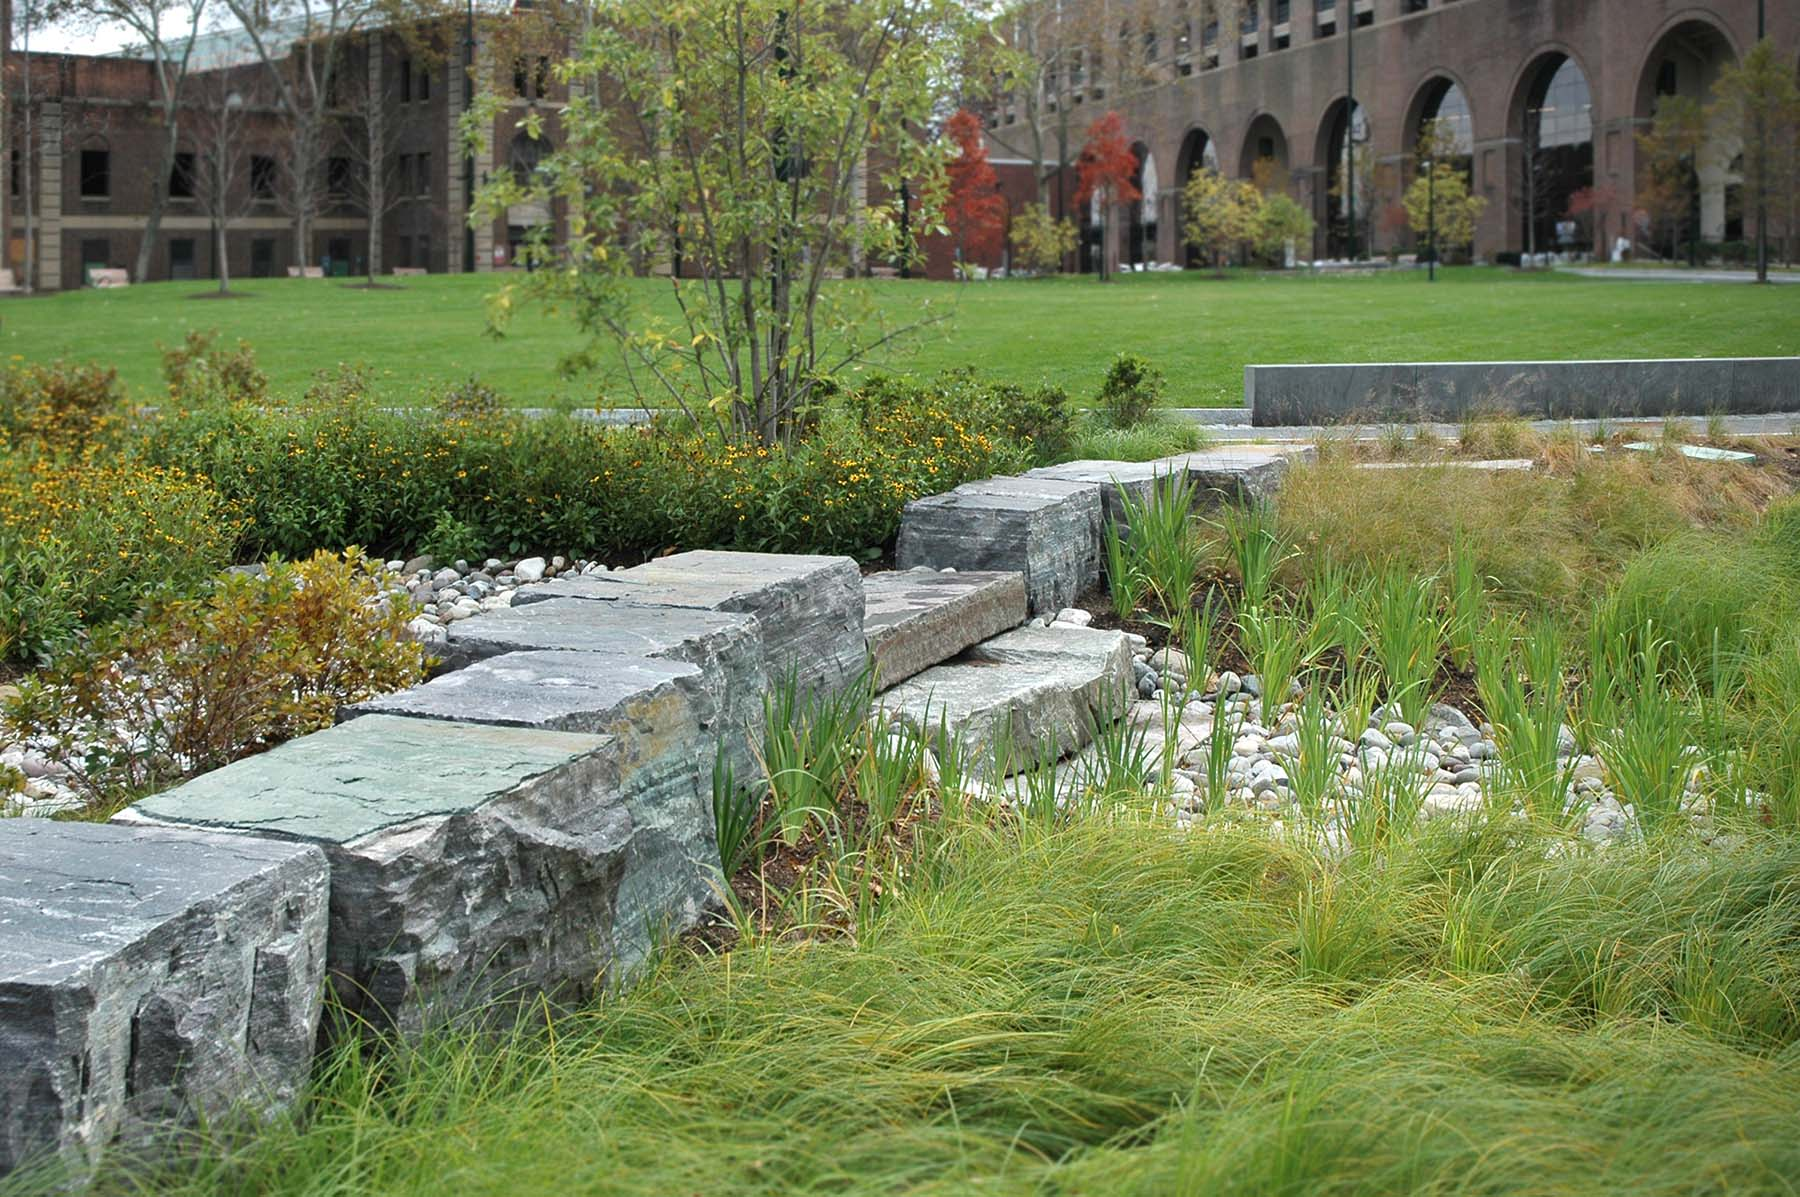 Natural Stone bridge for Shoemaker Green Park